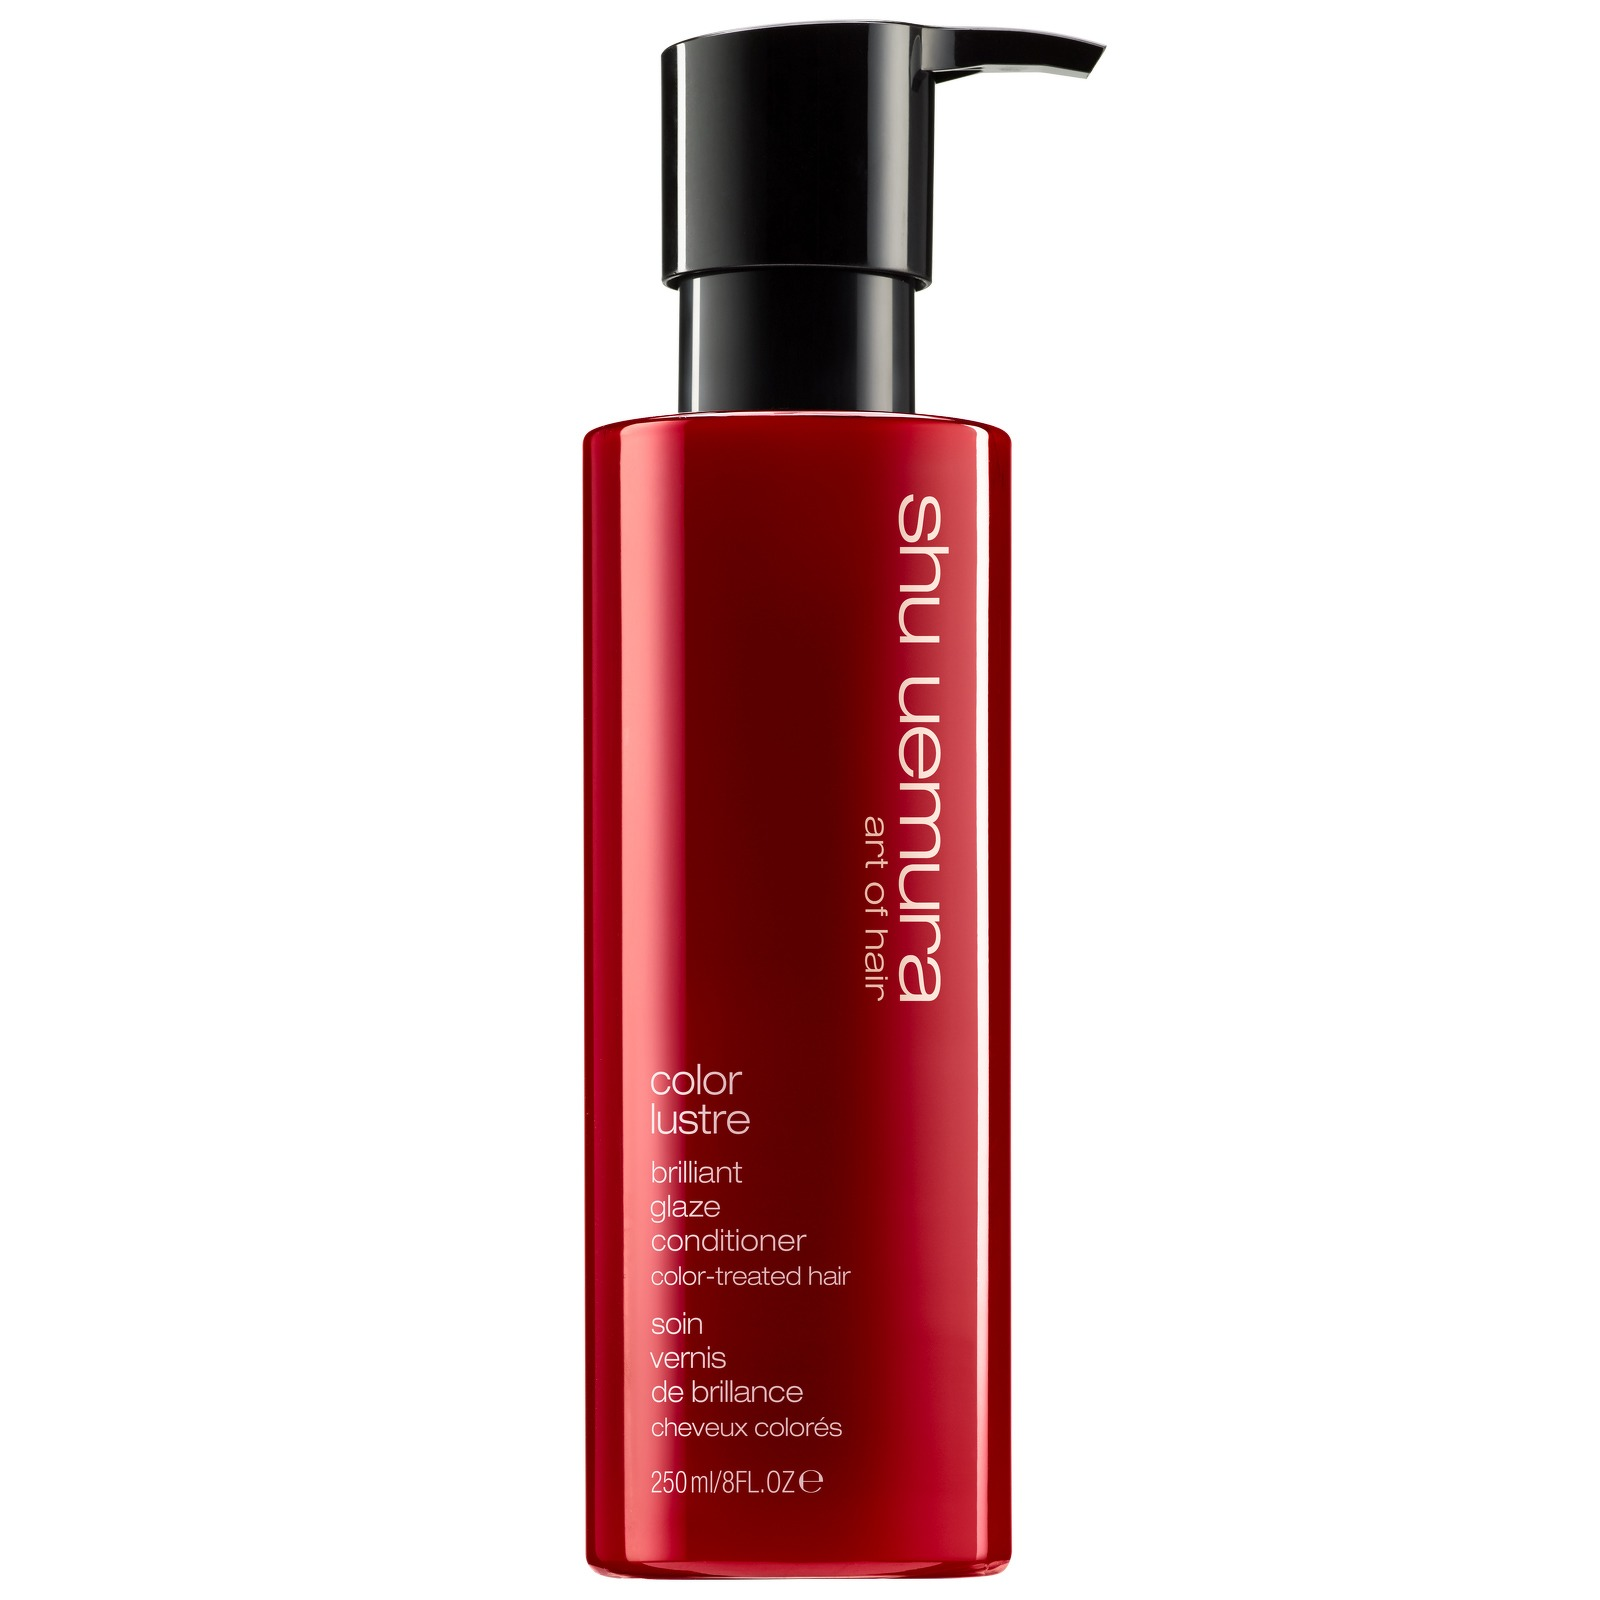 Shu Uemura Art of Hair Color Lustre Brilliant Glaze Conditioner 250ml